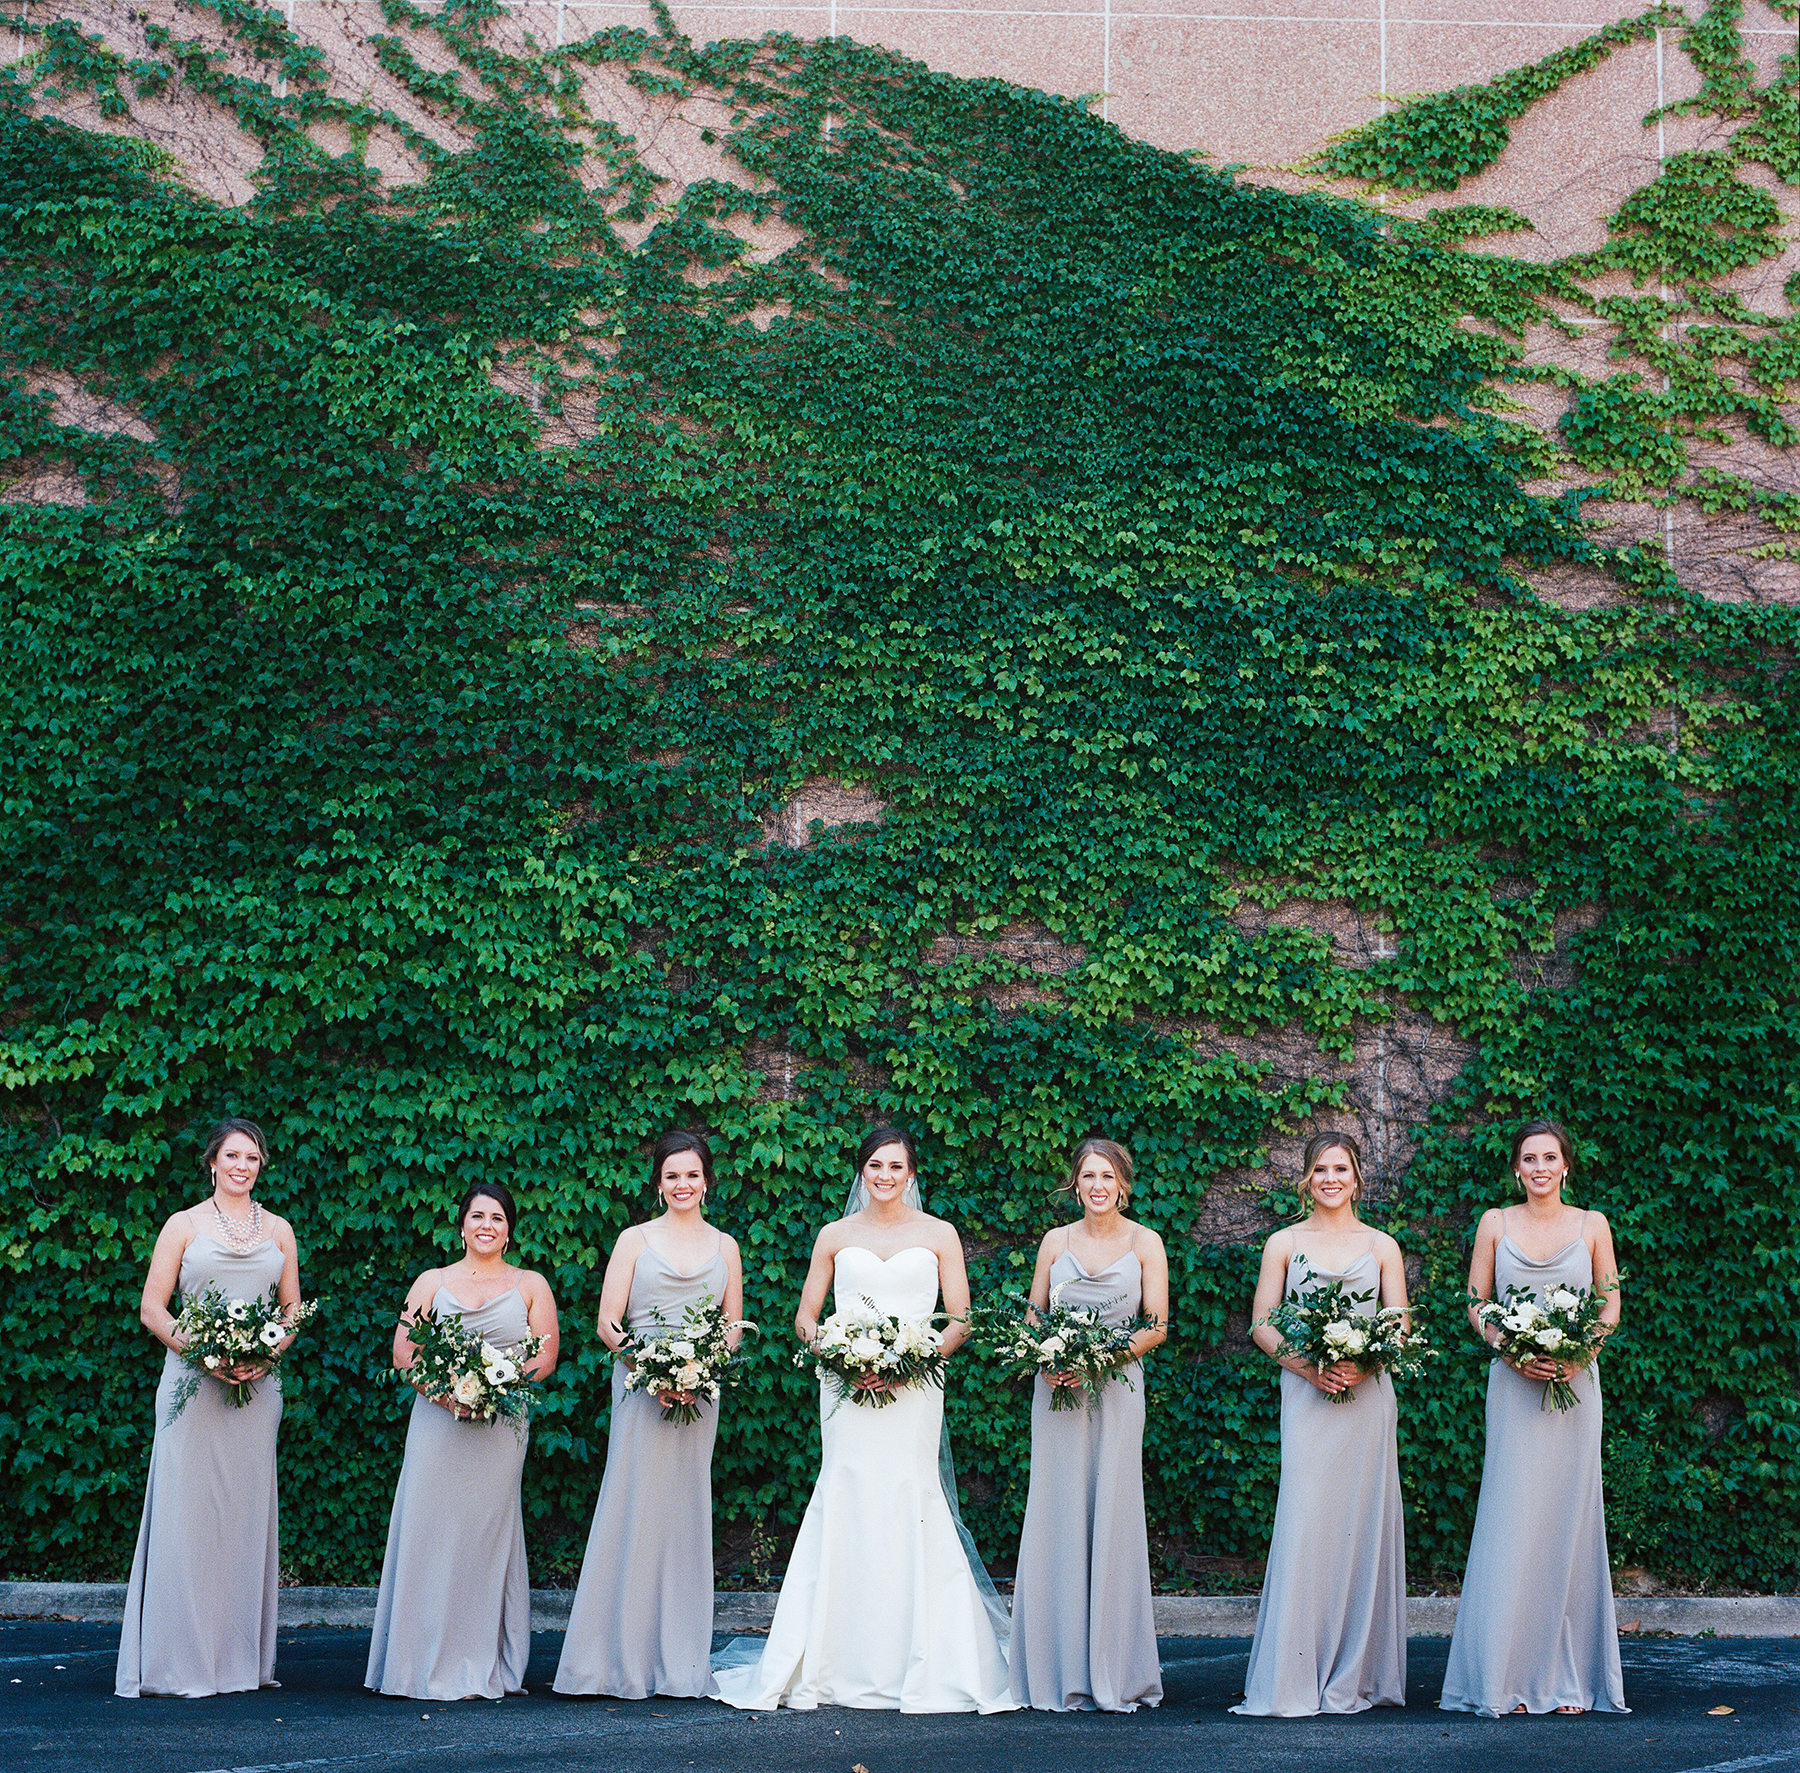 jett-walker-photography-bridesmaids.jpg